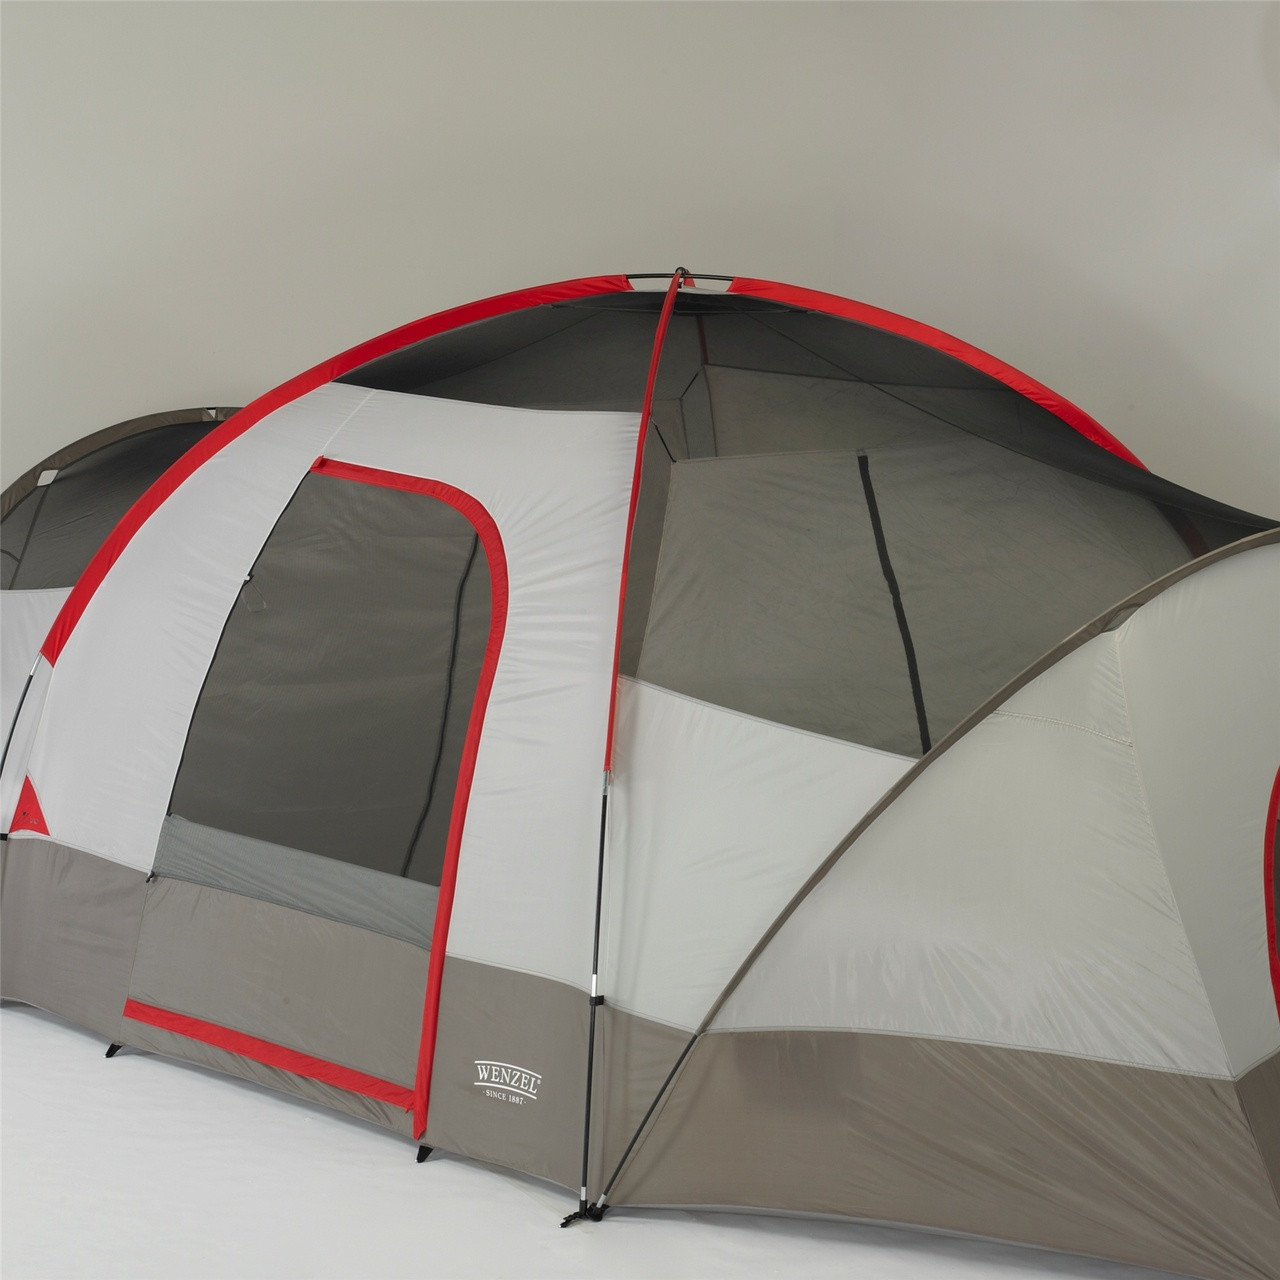 Front view of the Wenzel Great Basin 10 tent setup with the rain fly off showing the mesh ceiling